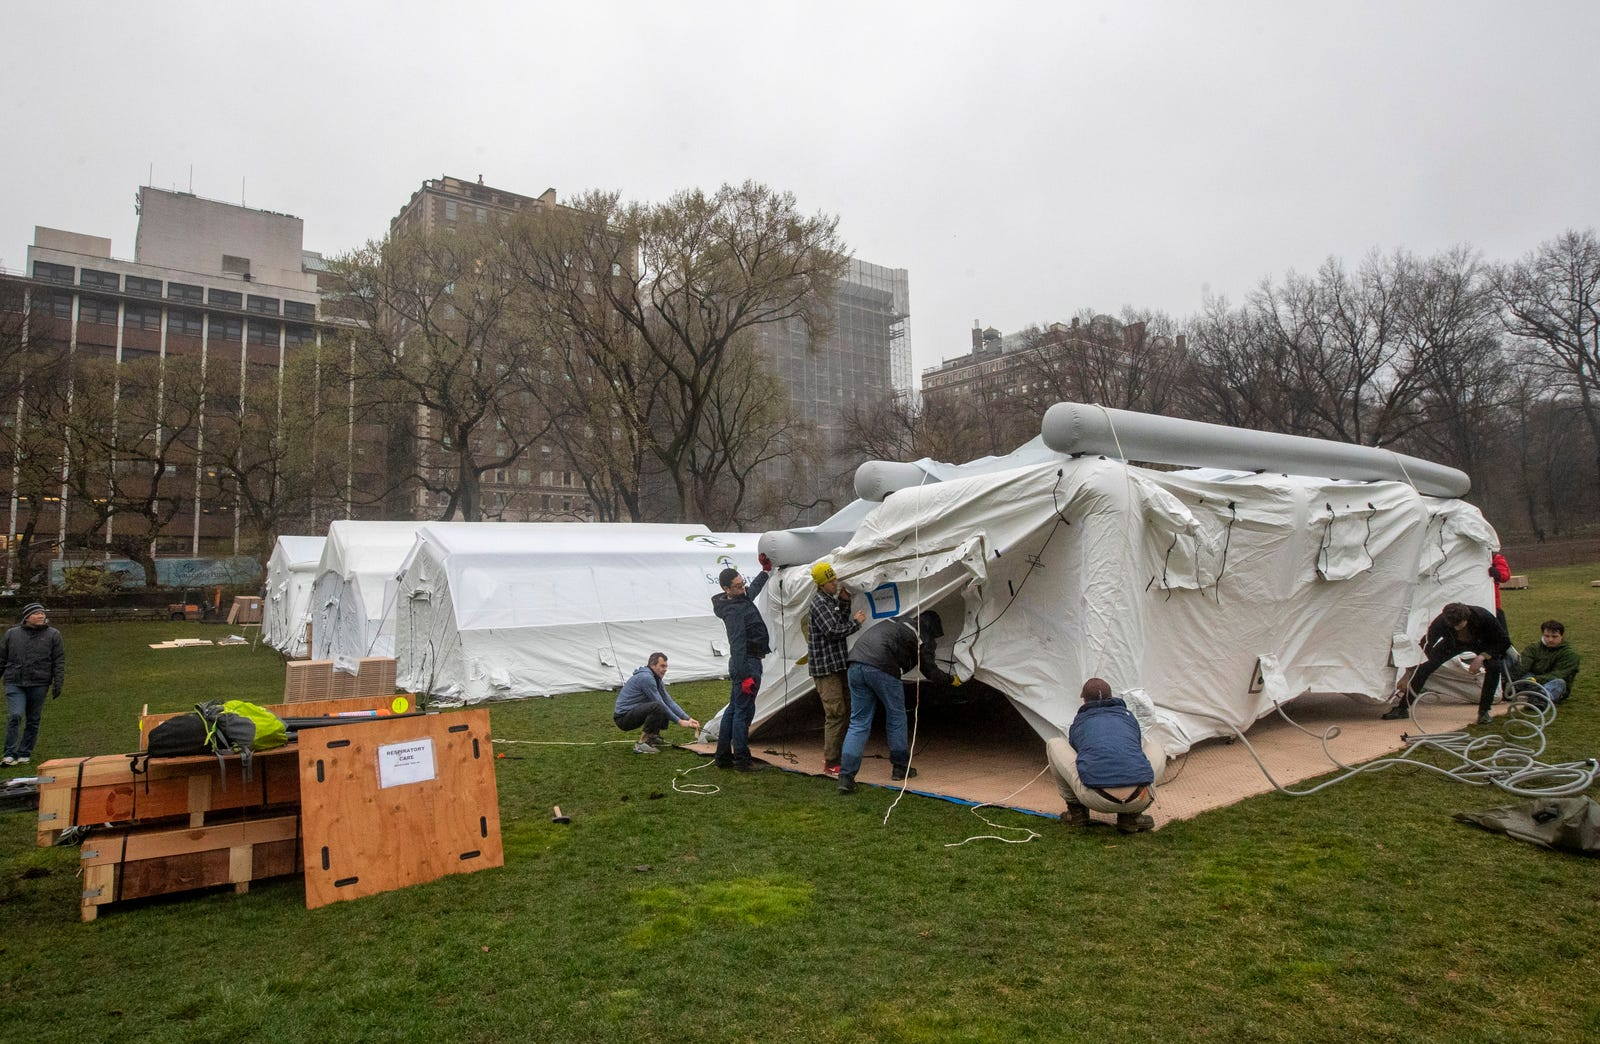 A Samaritan's Purse crew works on building an emergency field hospital equipped with a respiratory unit in New York's Central Park across from the Mount Sinai Hospital, Sunday, March 29, 2020.